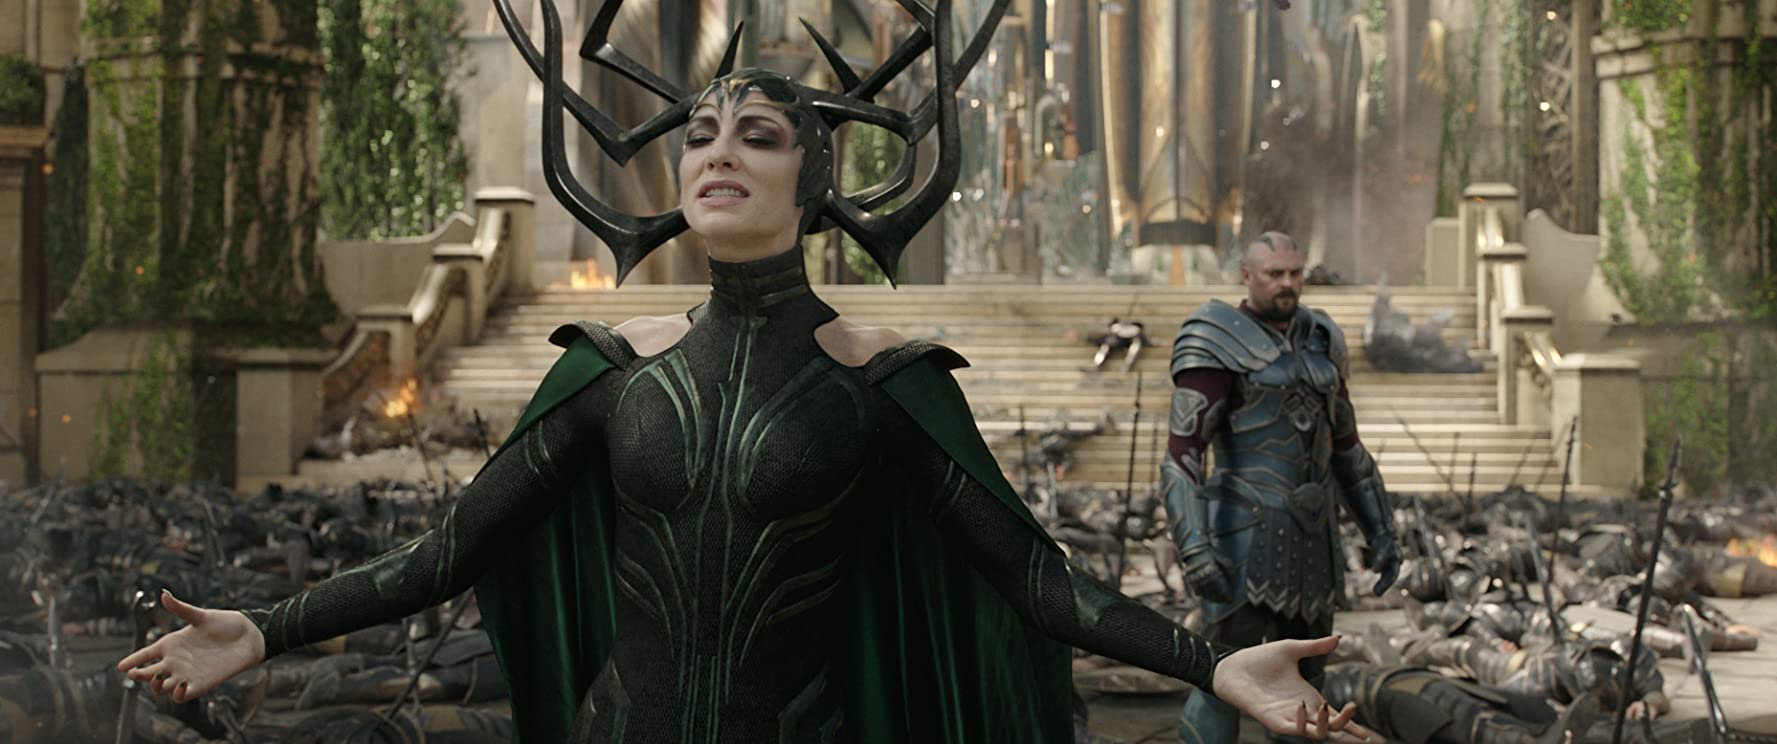 Cate Blanchett and Karl Urban in Thor: Ragnarok (2017)